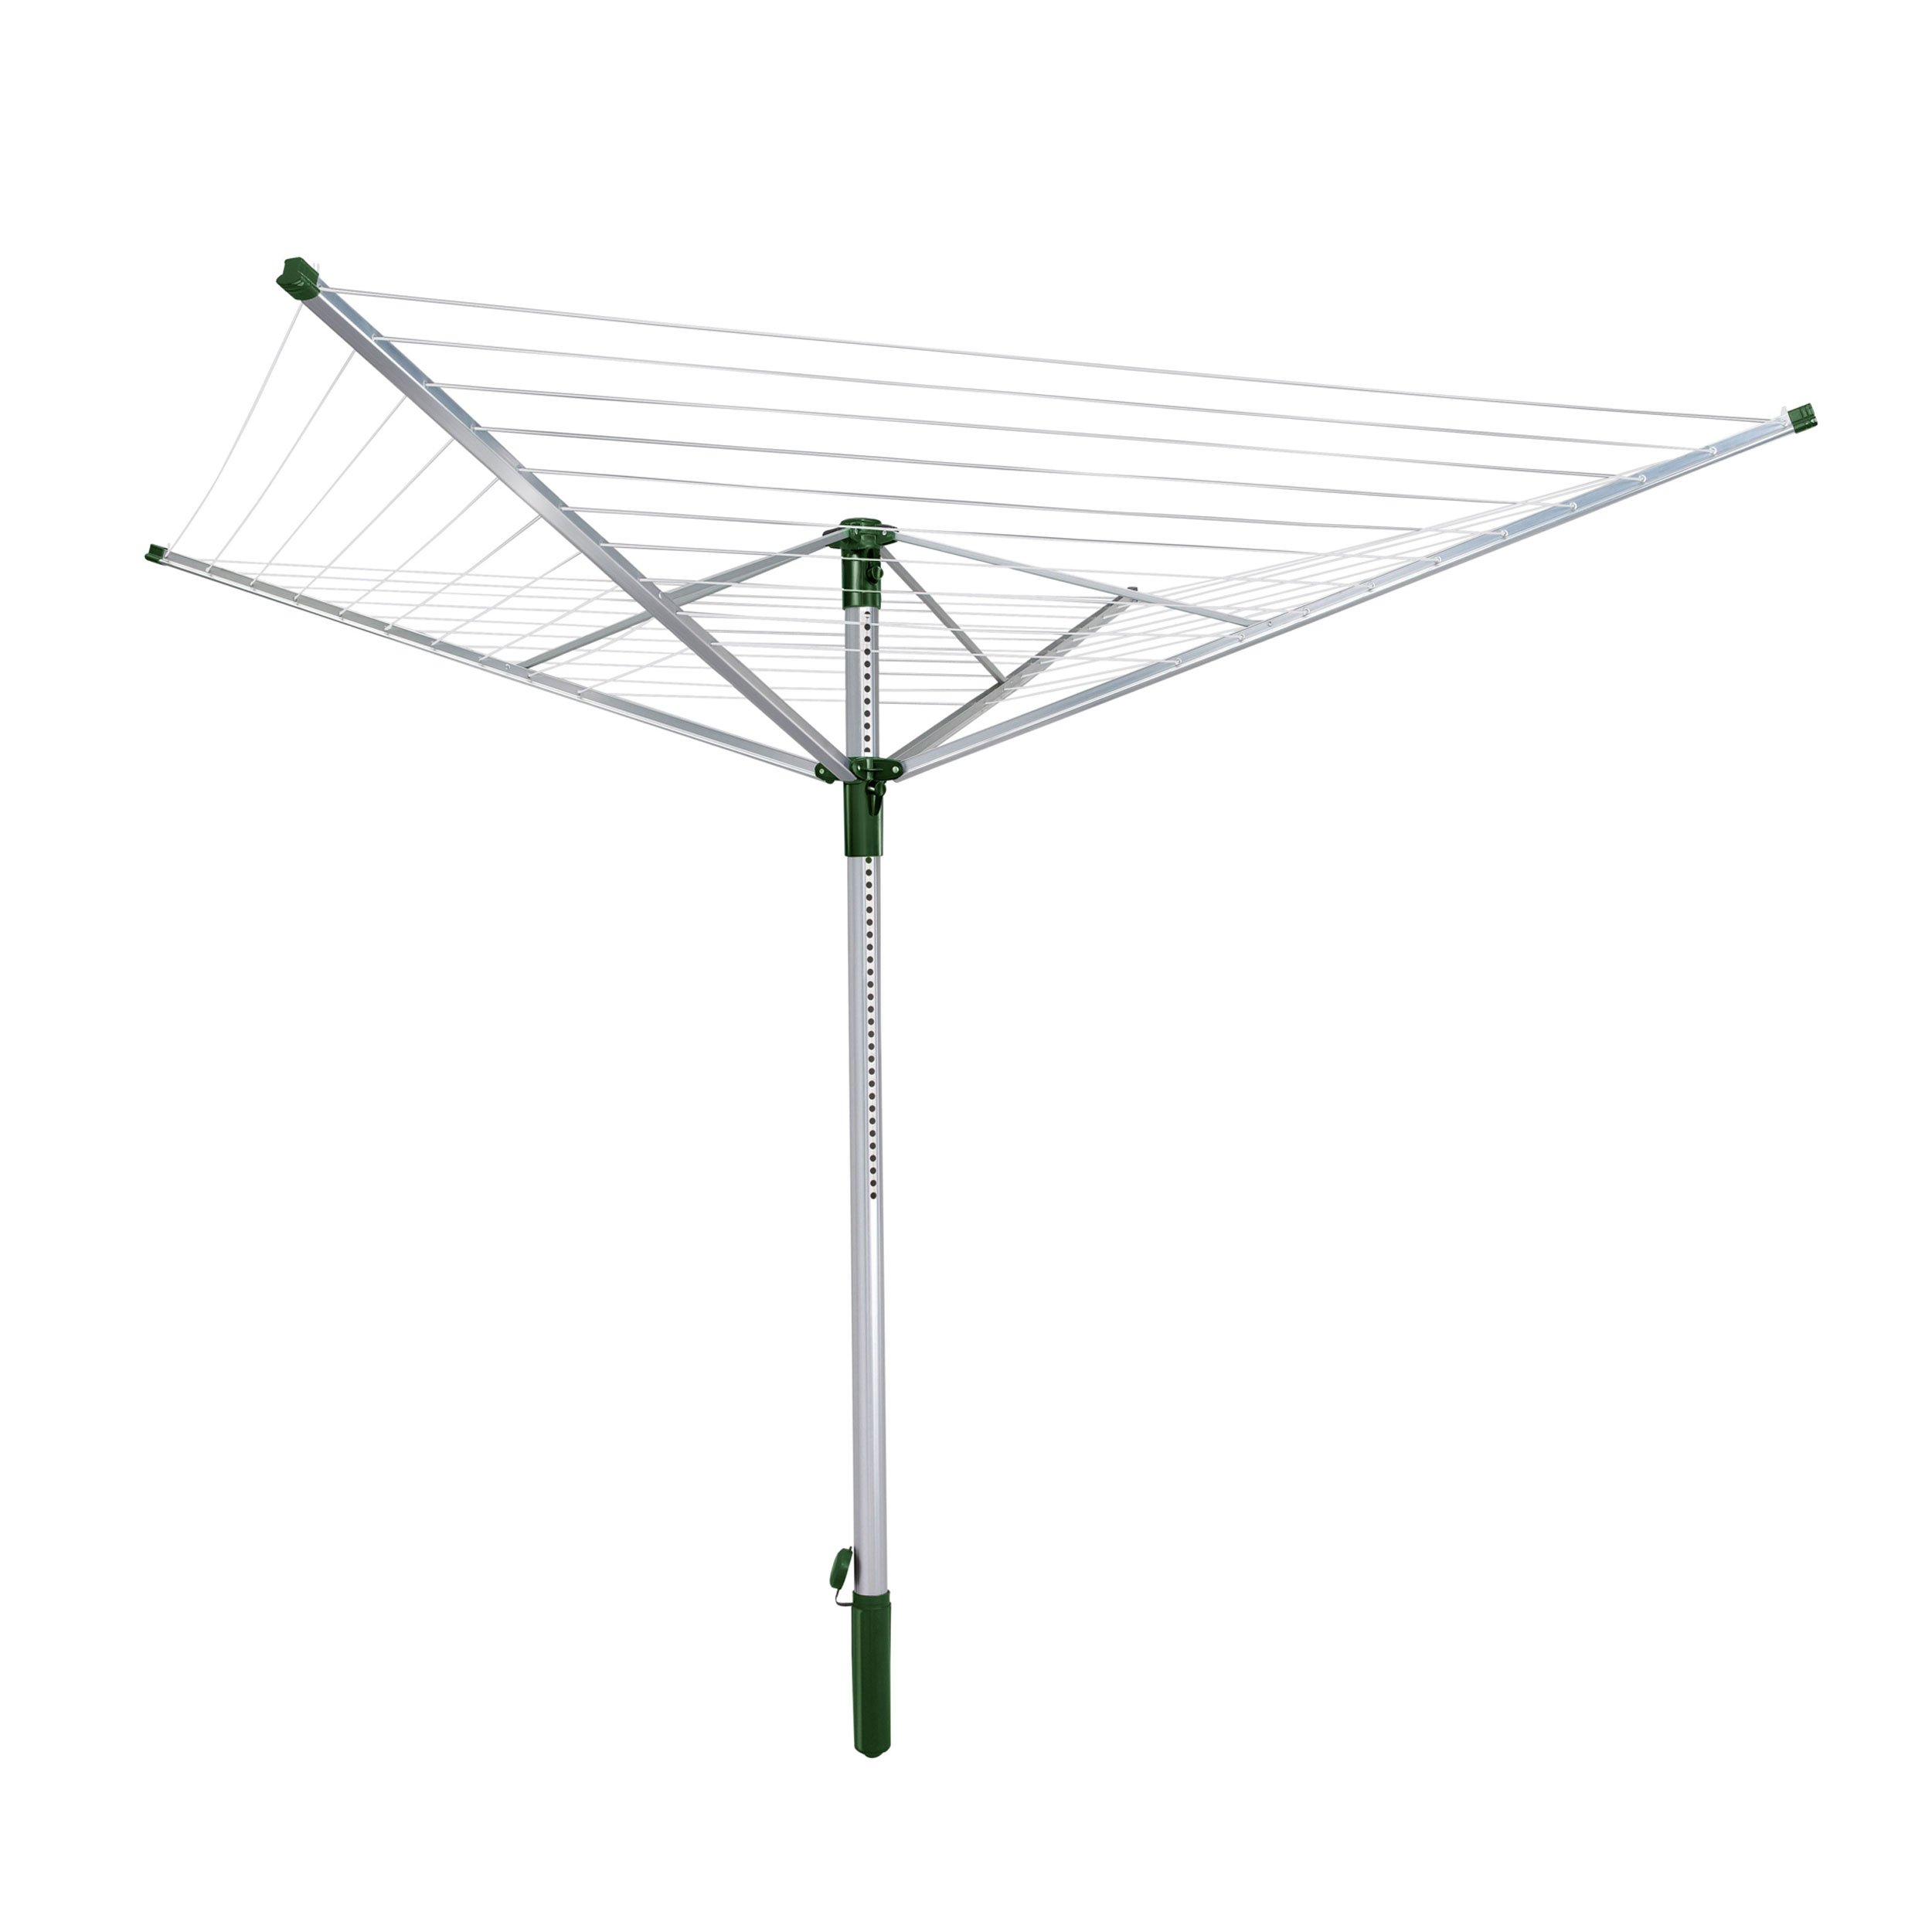 Leifheit Rotary Clothesline Lino Lift 500 Opal Green with Protective Cover, Rotary Dryer, Clothes Drying Rack Clothes Horse, Green, 85356